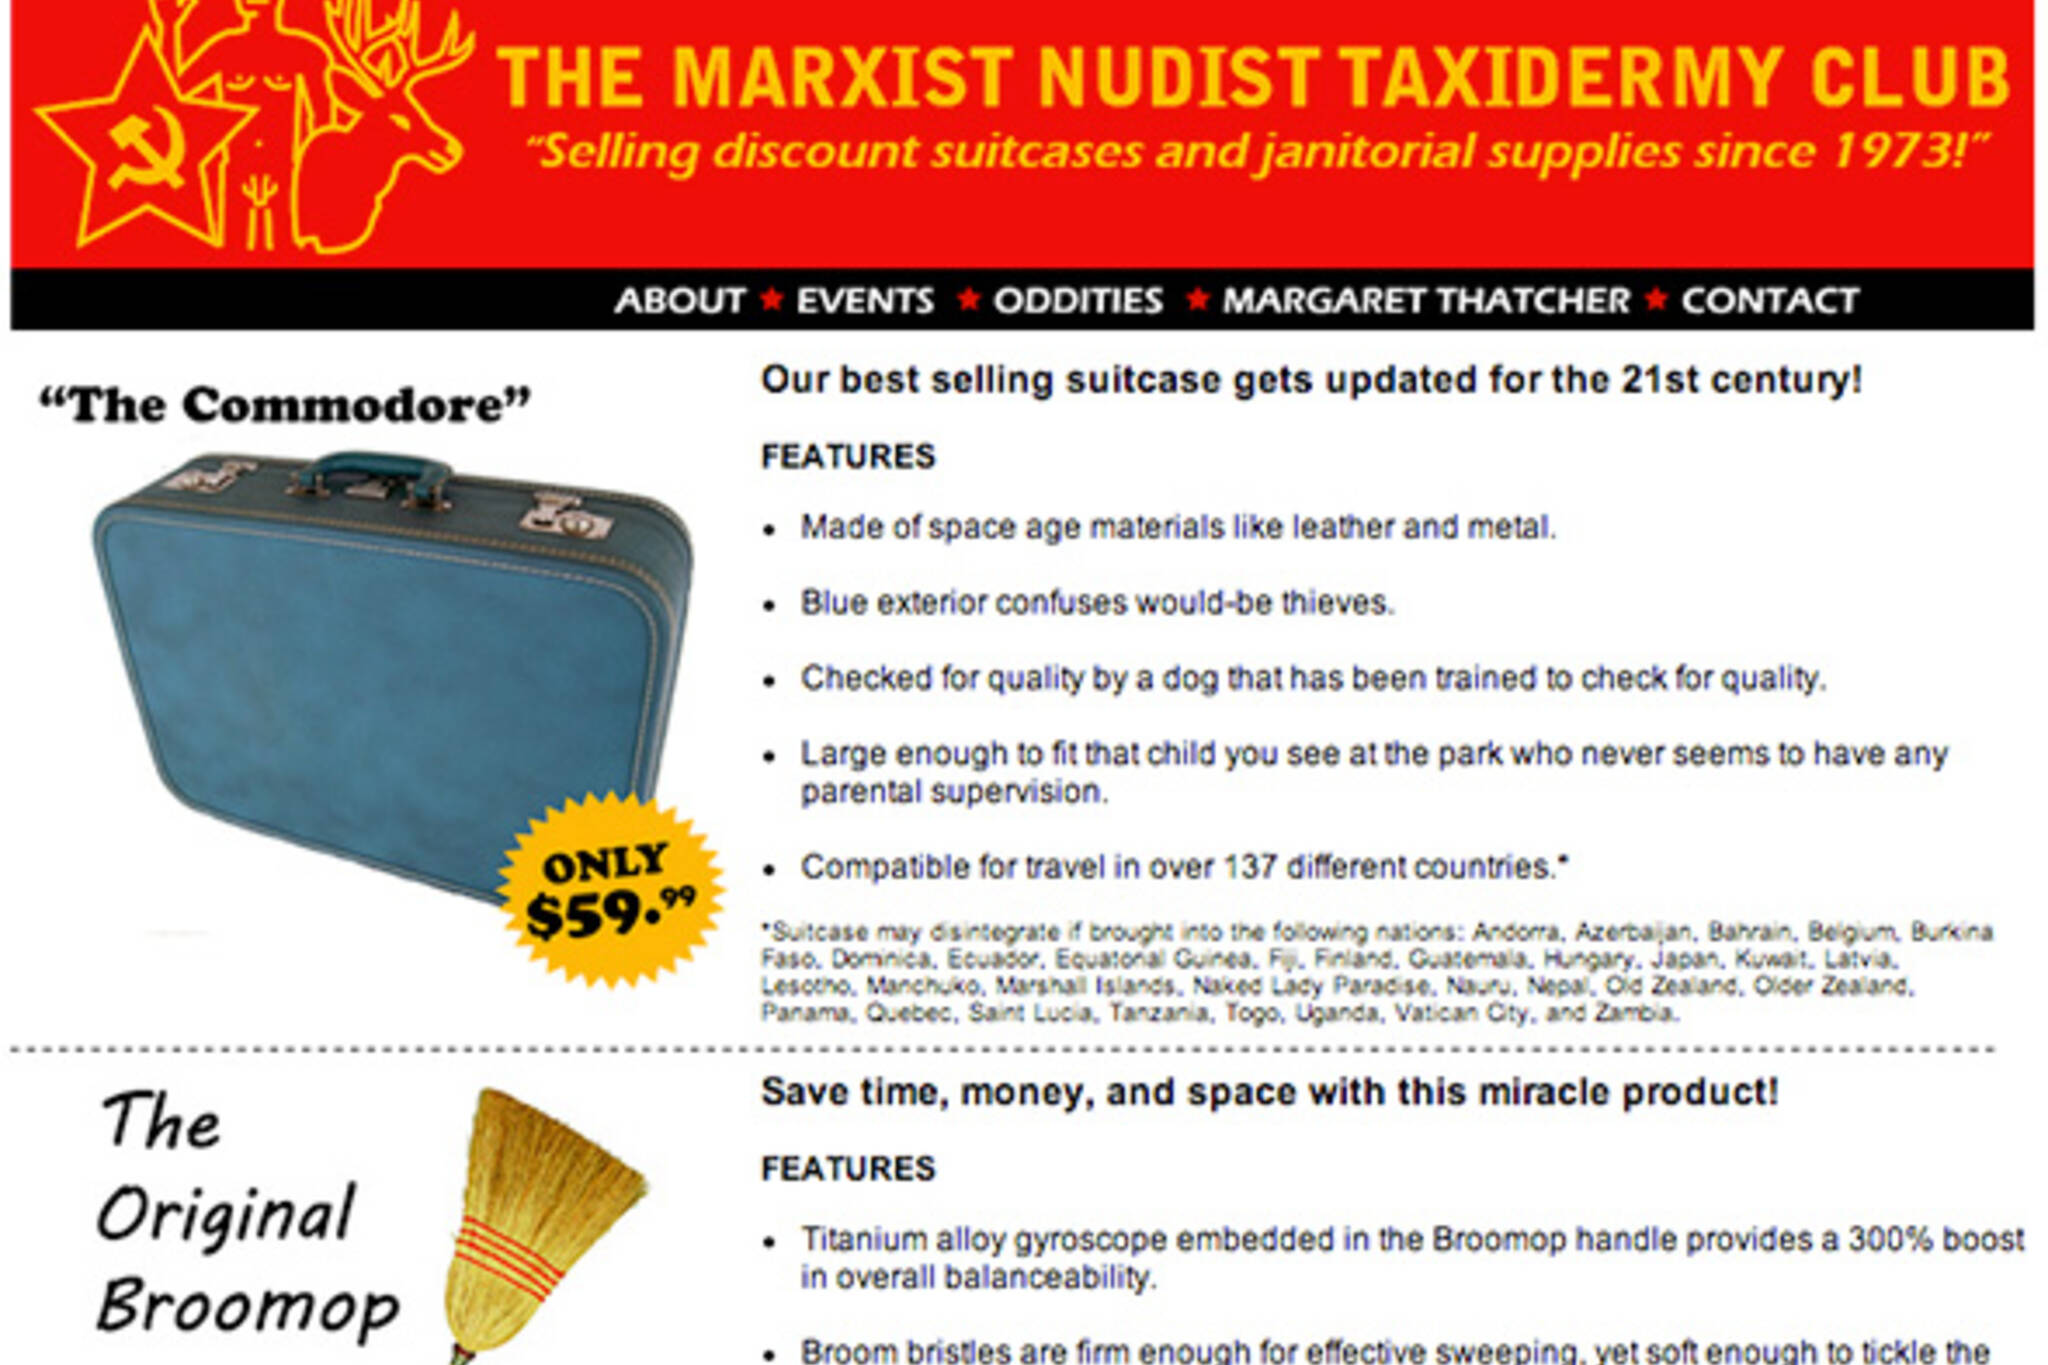 Nudist Marxist Taxidermy Club